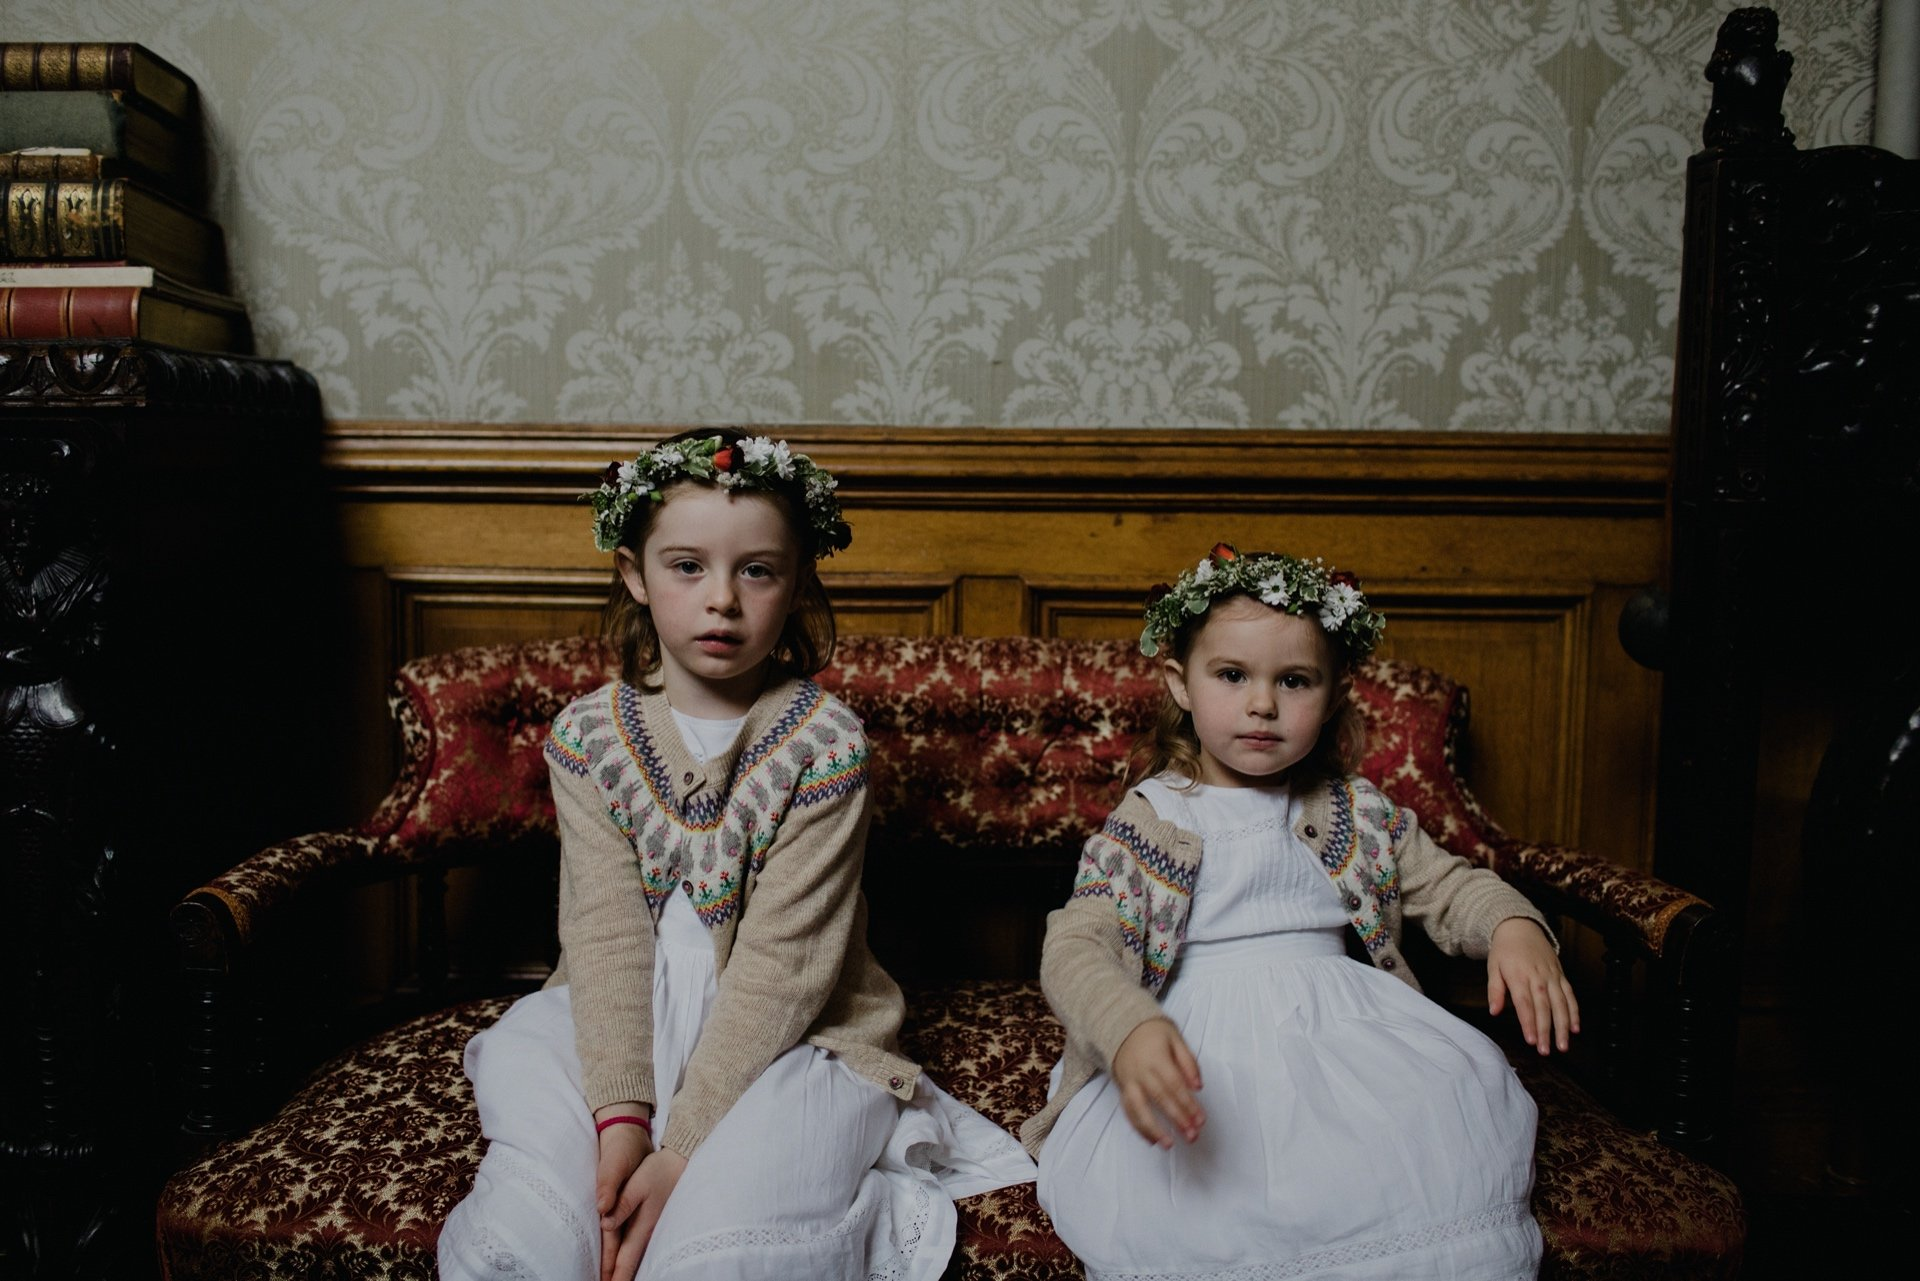 flower girls relaxing on the sofa, girls wear cardigans and flower crowns with white dresses